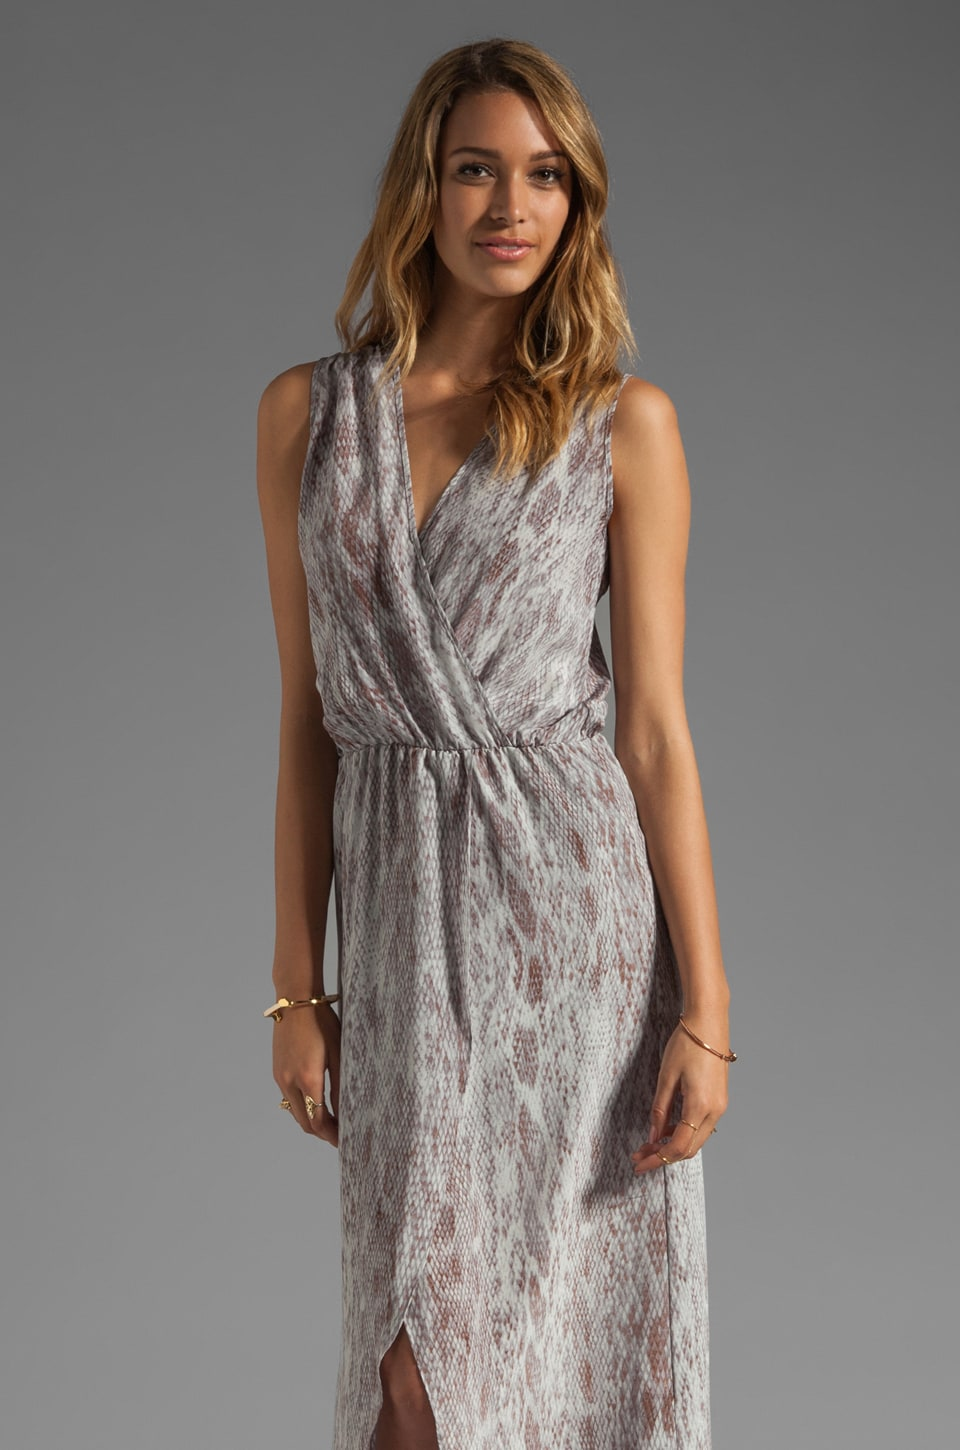 Karina Grimaldi Raffaela Print Maxi Dress in Grey Snake